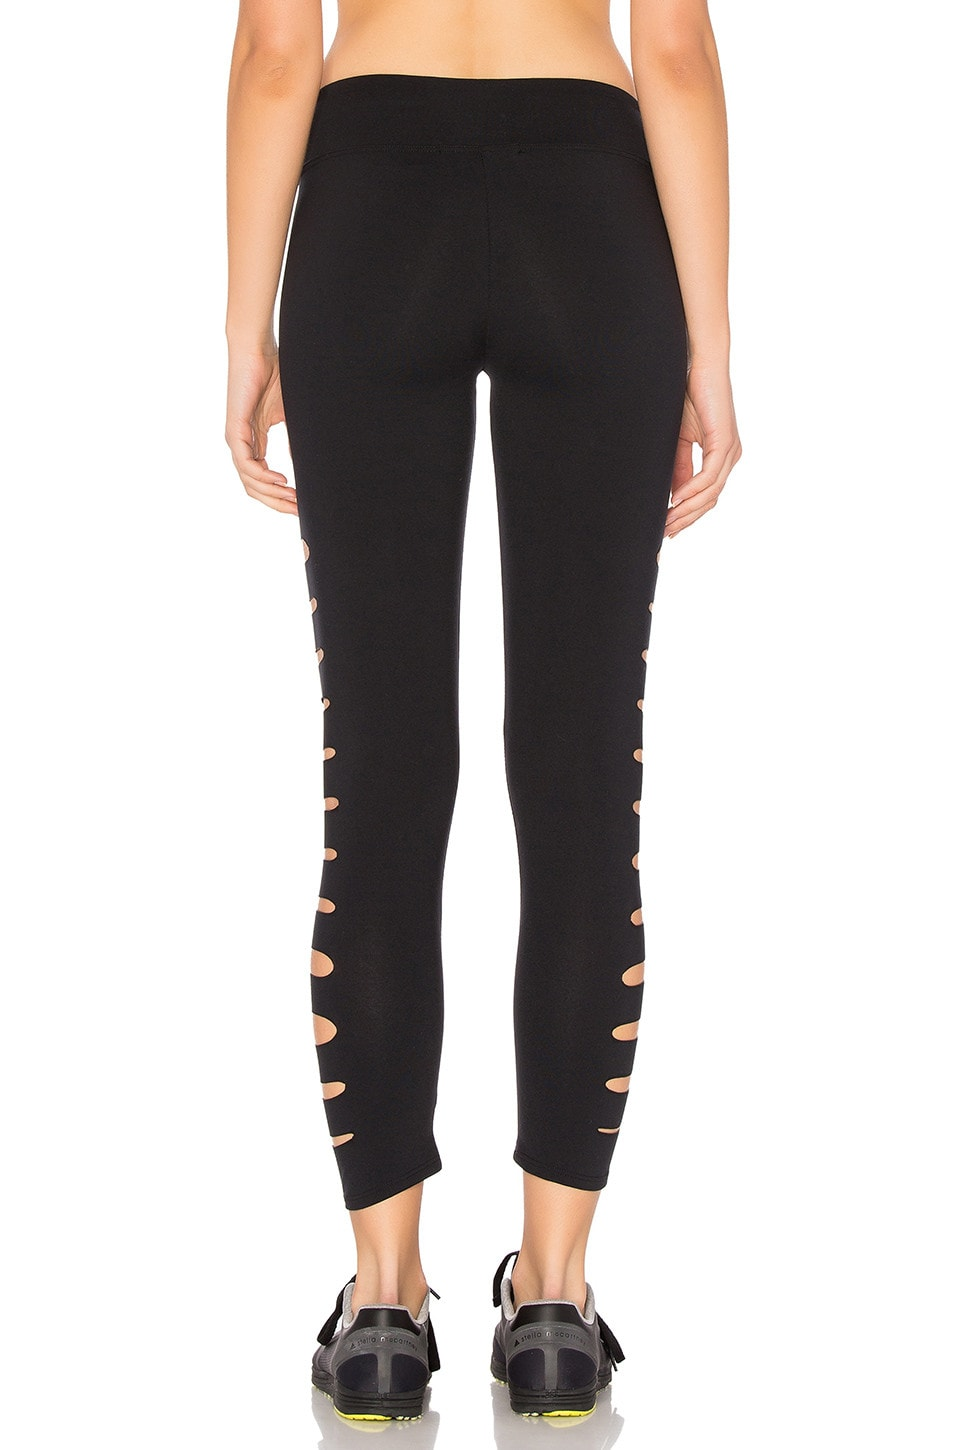 Solow Lasercut Legging